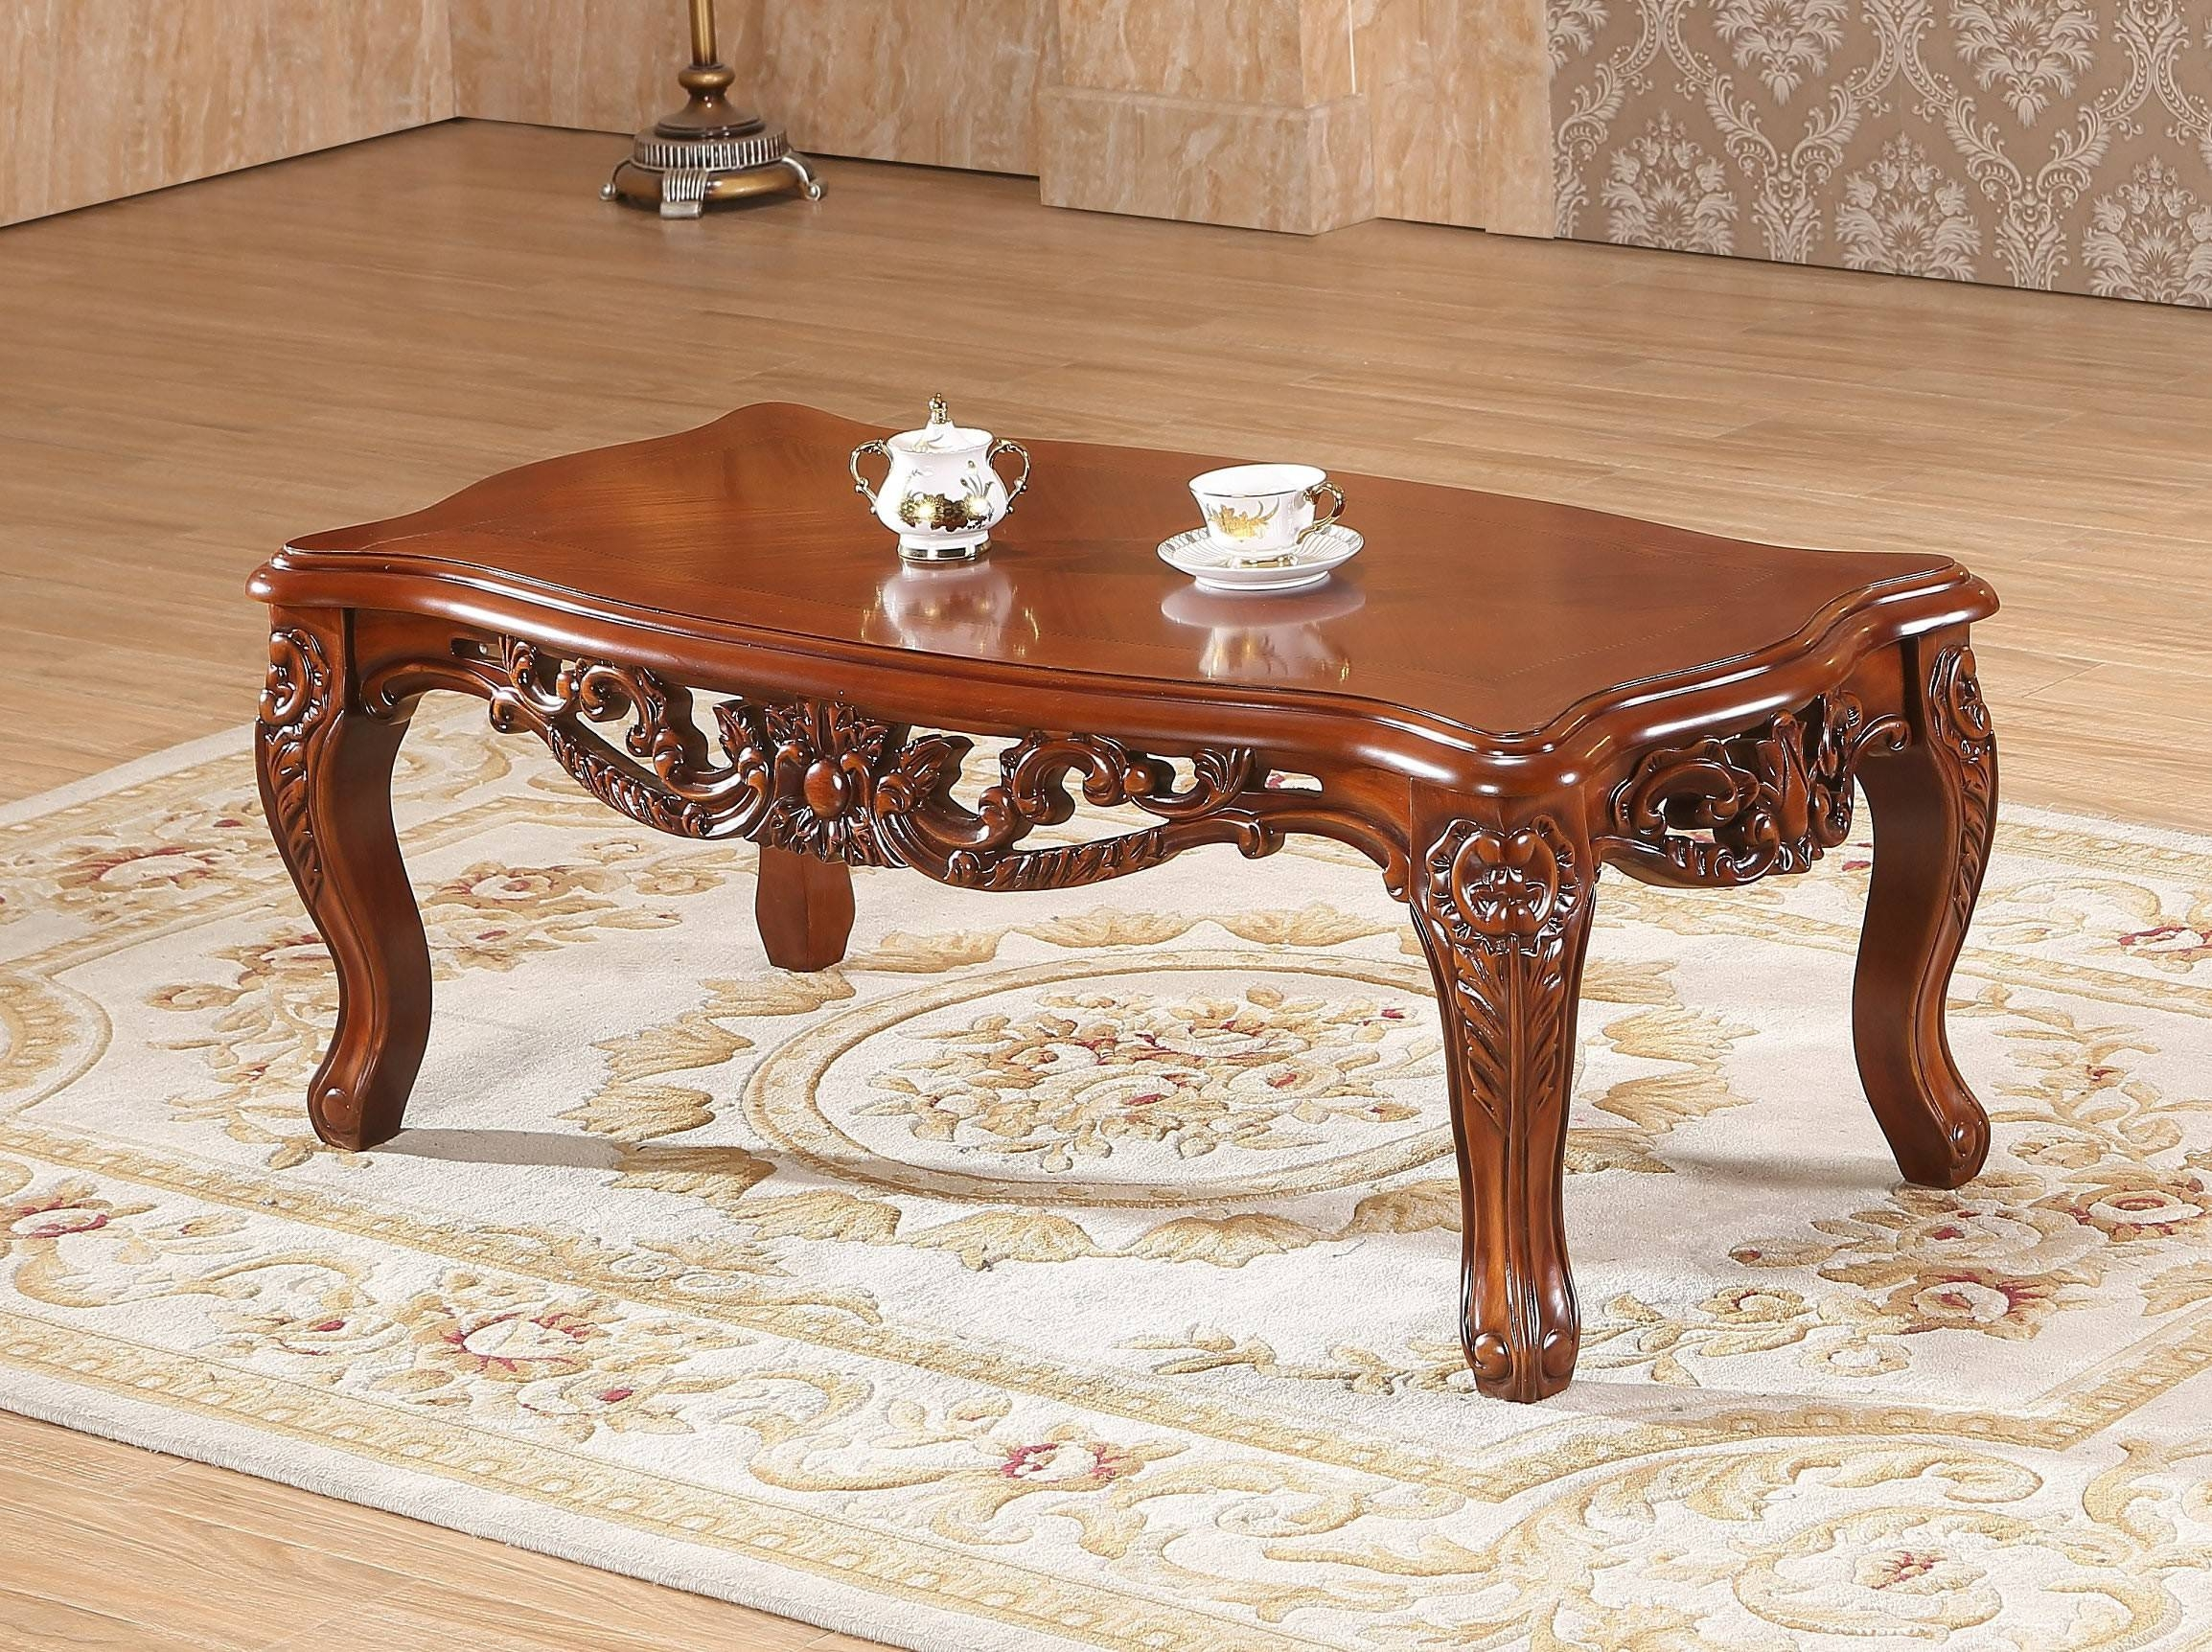 Verona Coffee Table Buy Online At Best Price - Sohomod within Verona Coffee Tables (Image 16 of 30)